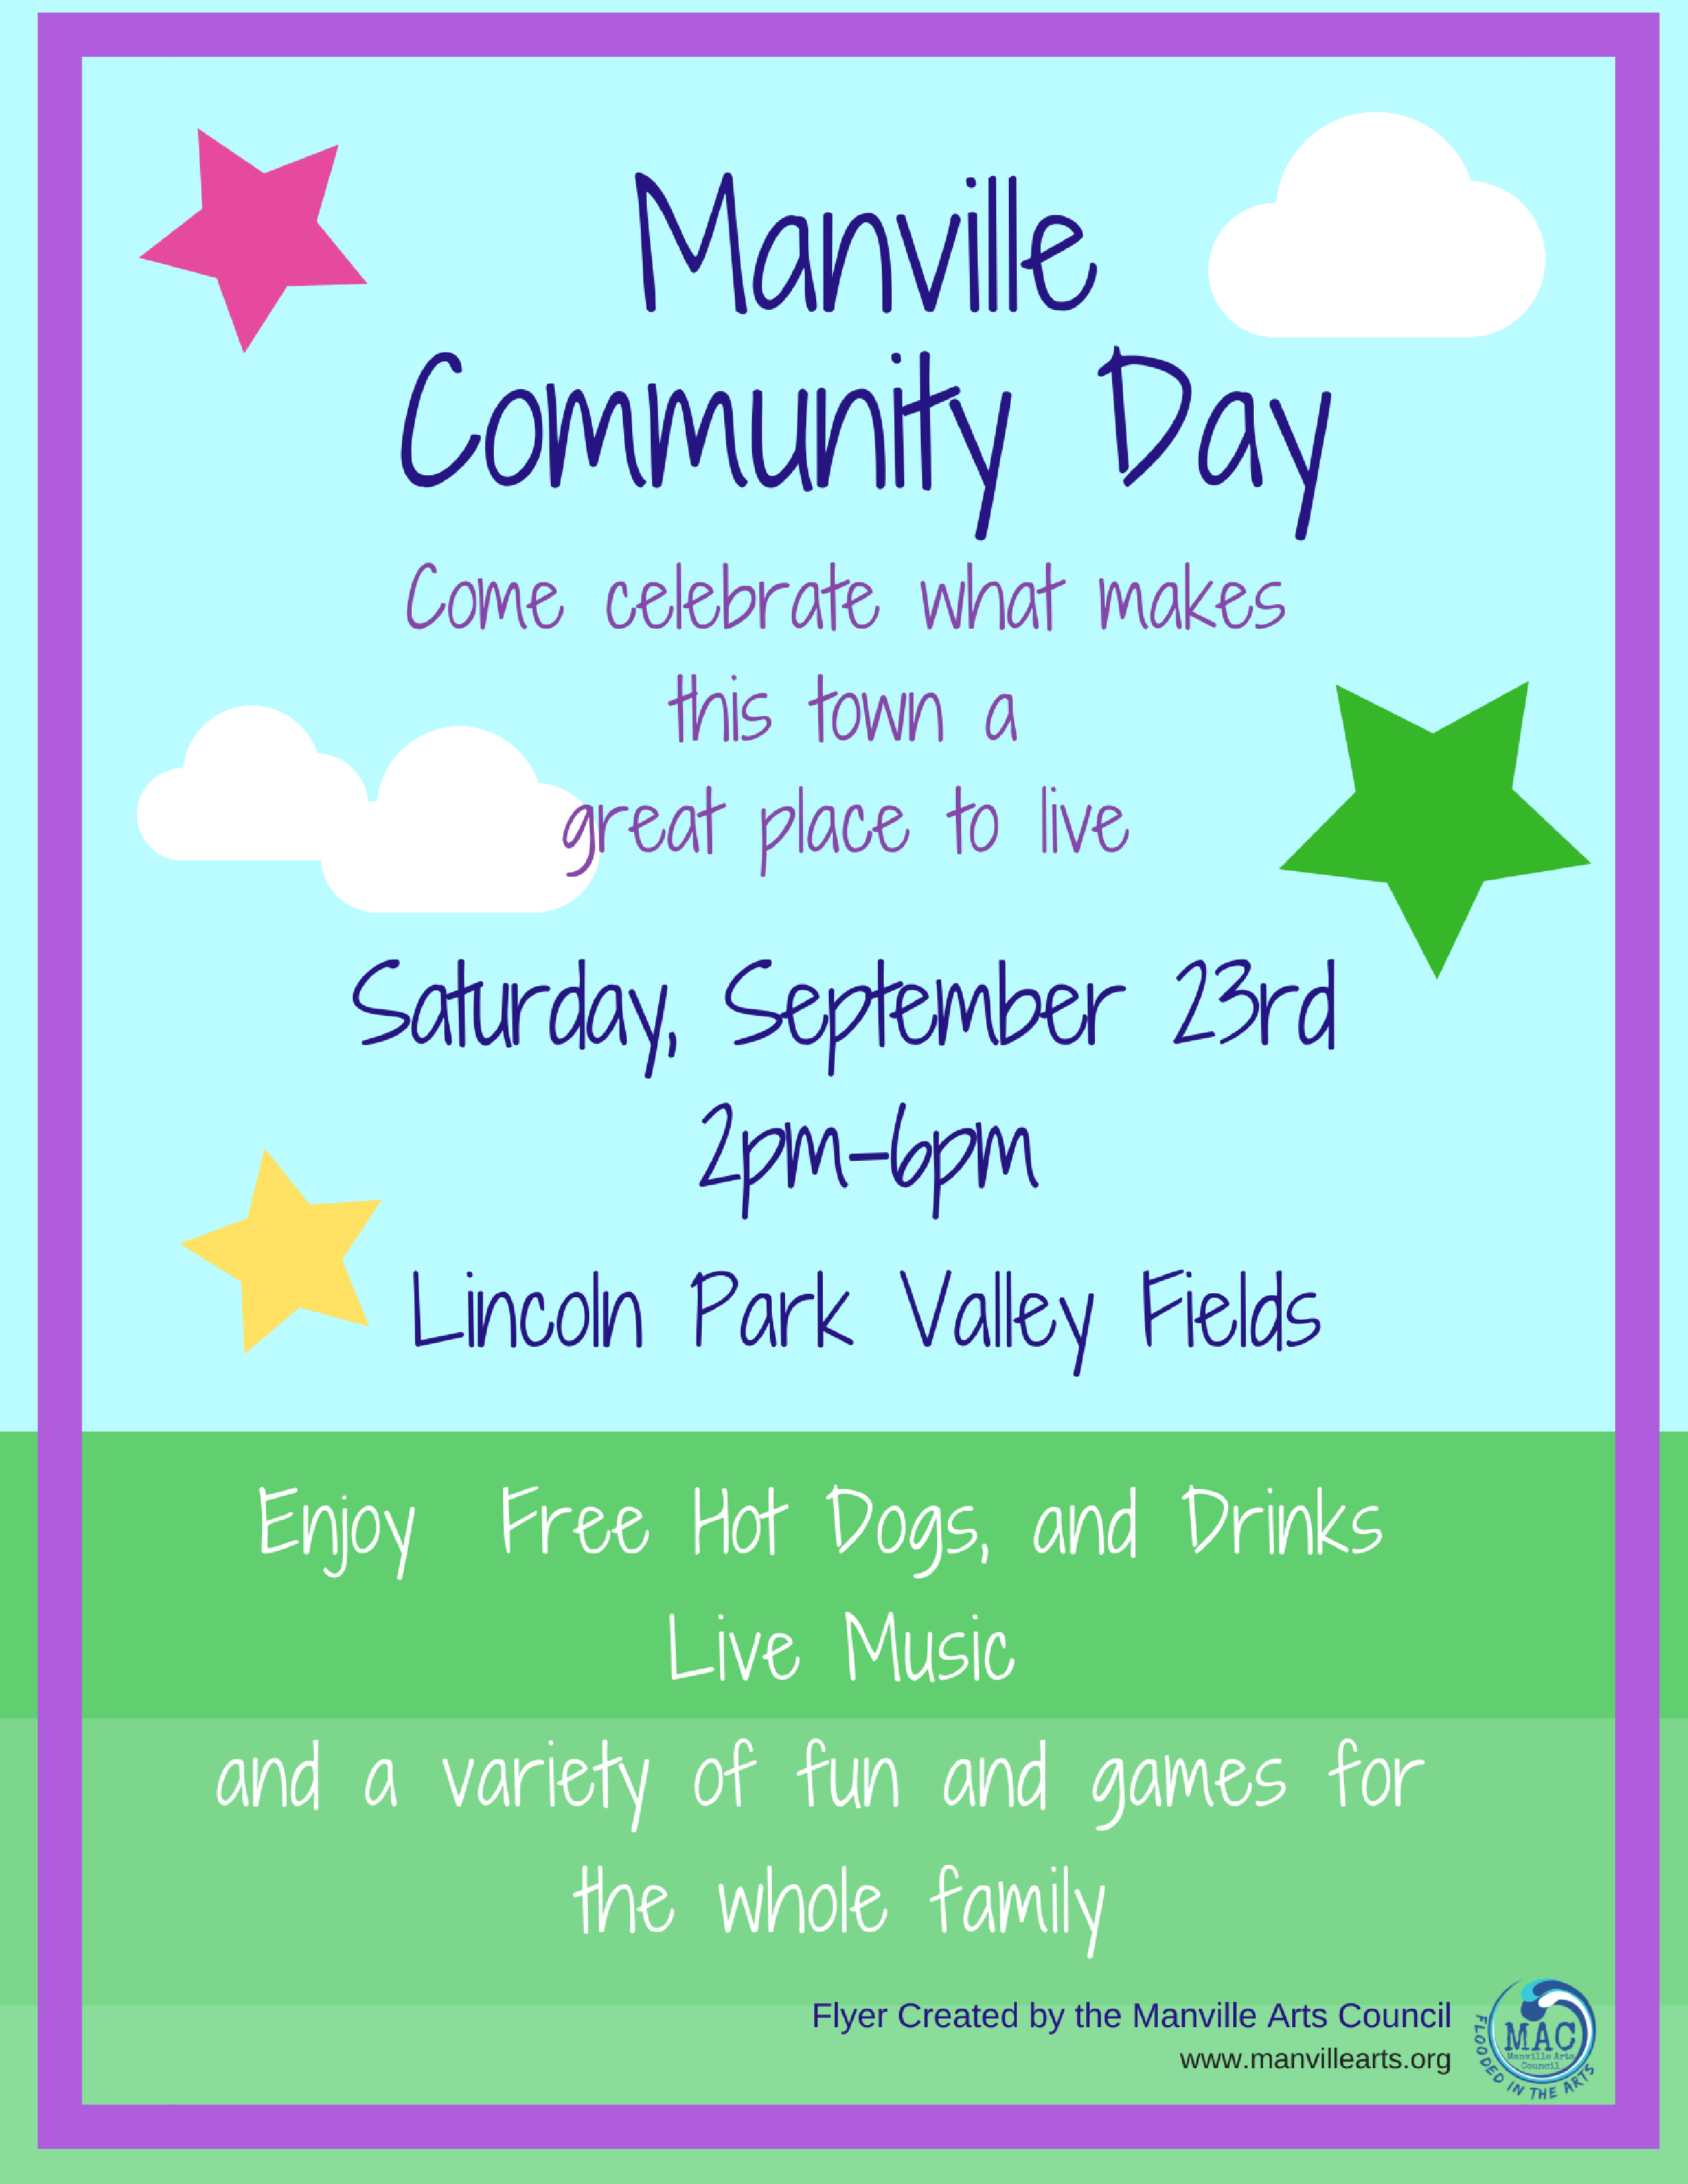 Updated Manville Community Day